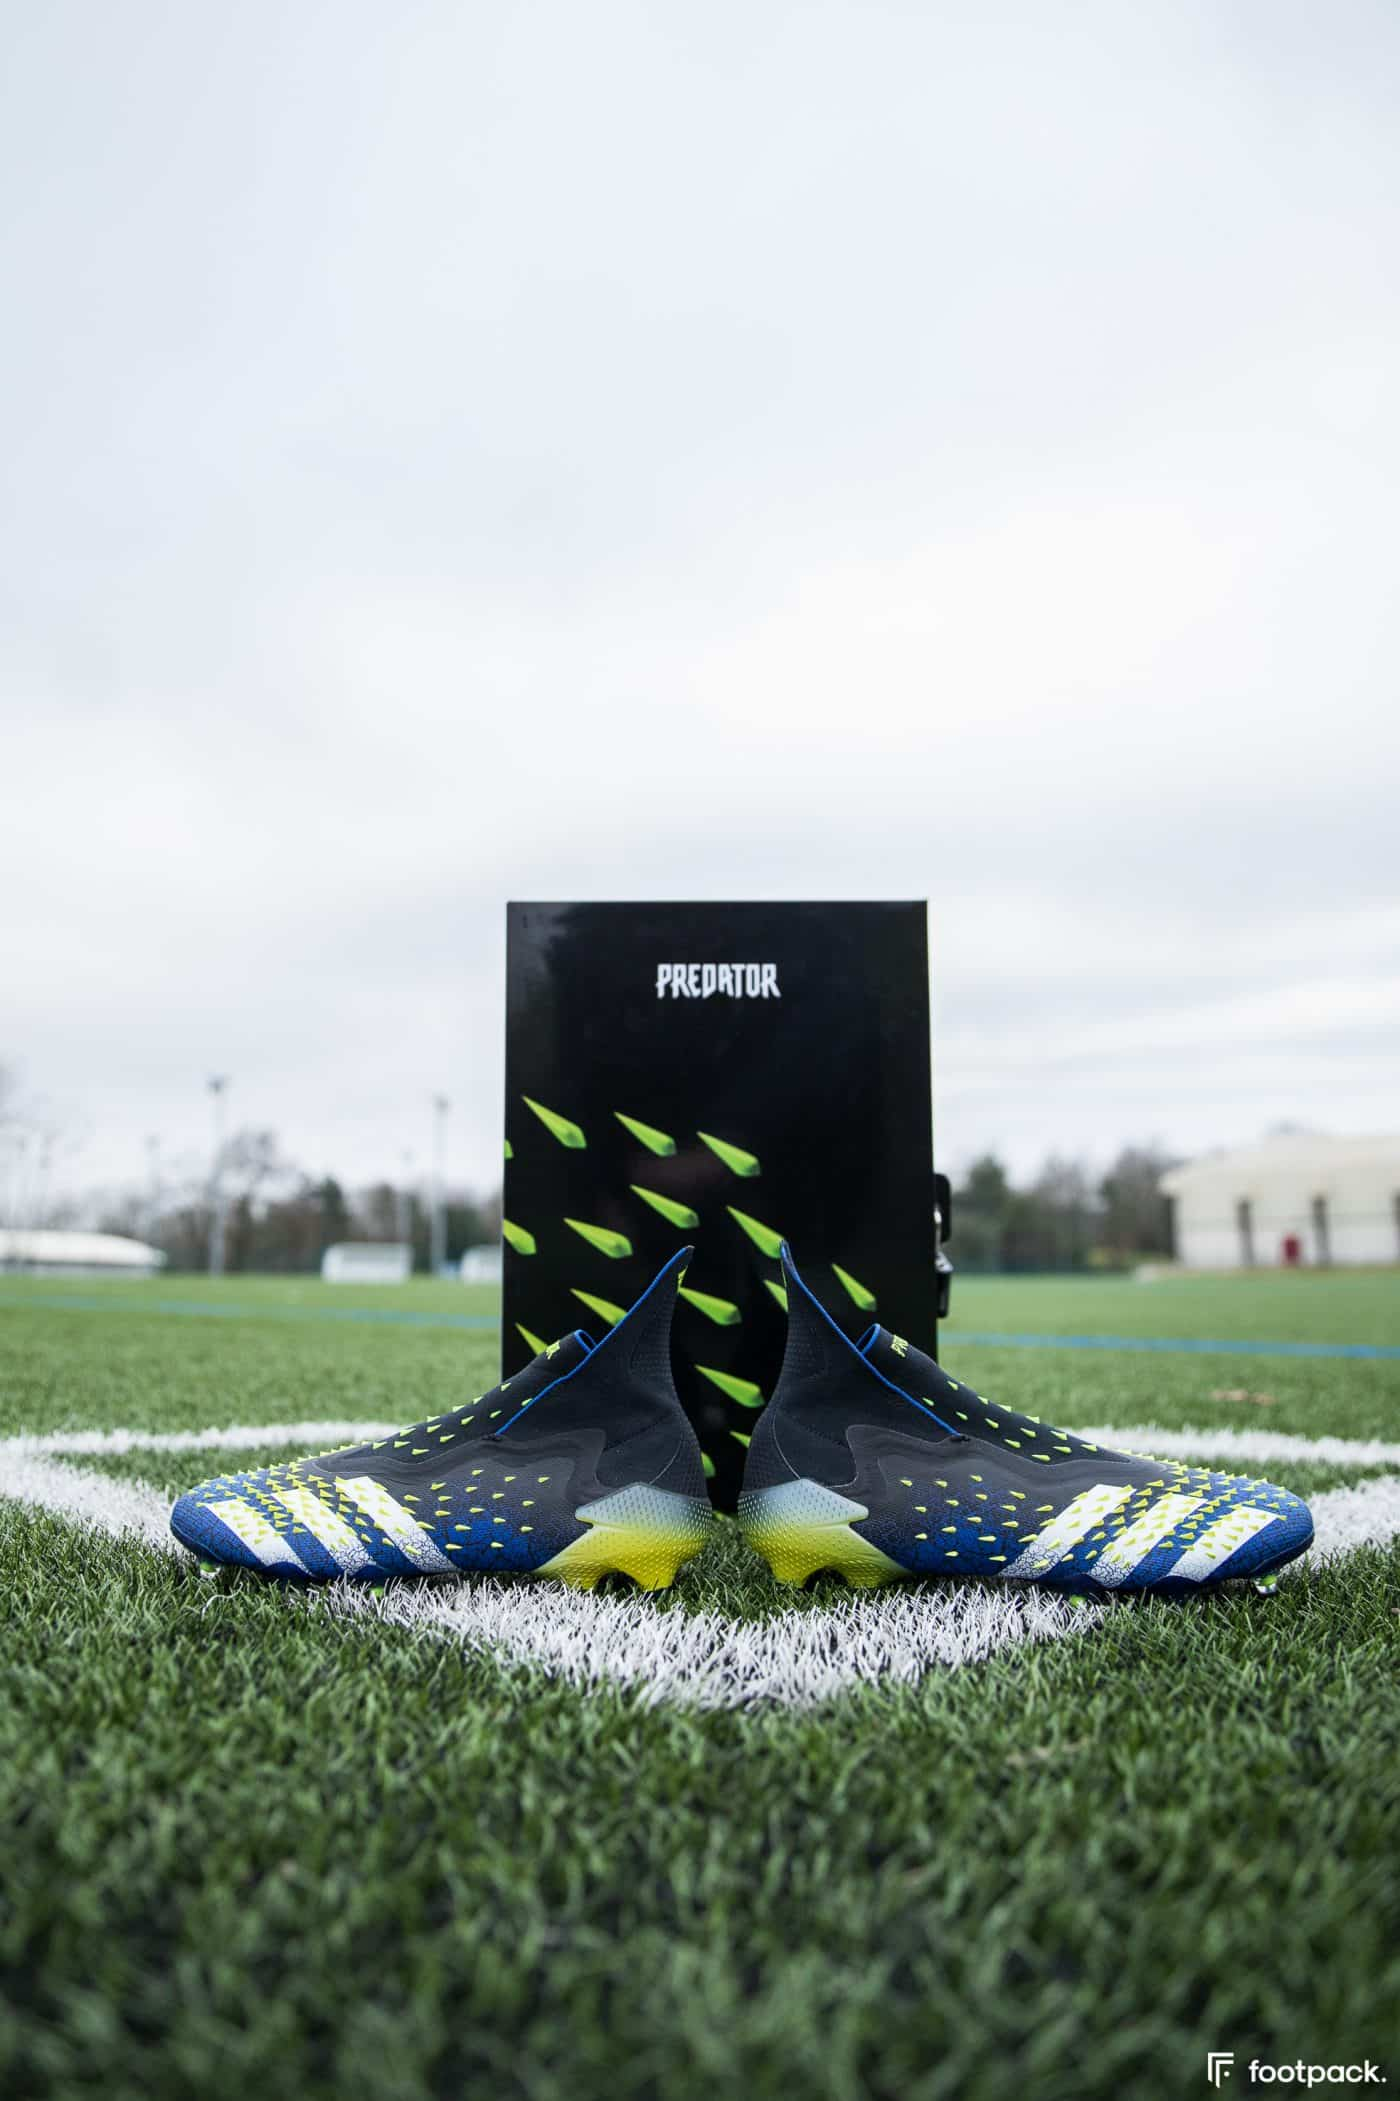 adidas-predator-freak-superlative-footpack-2